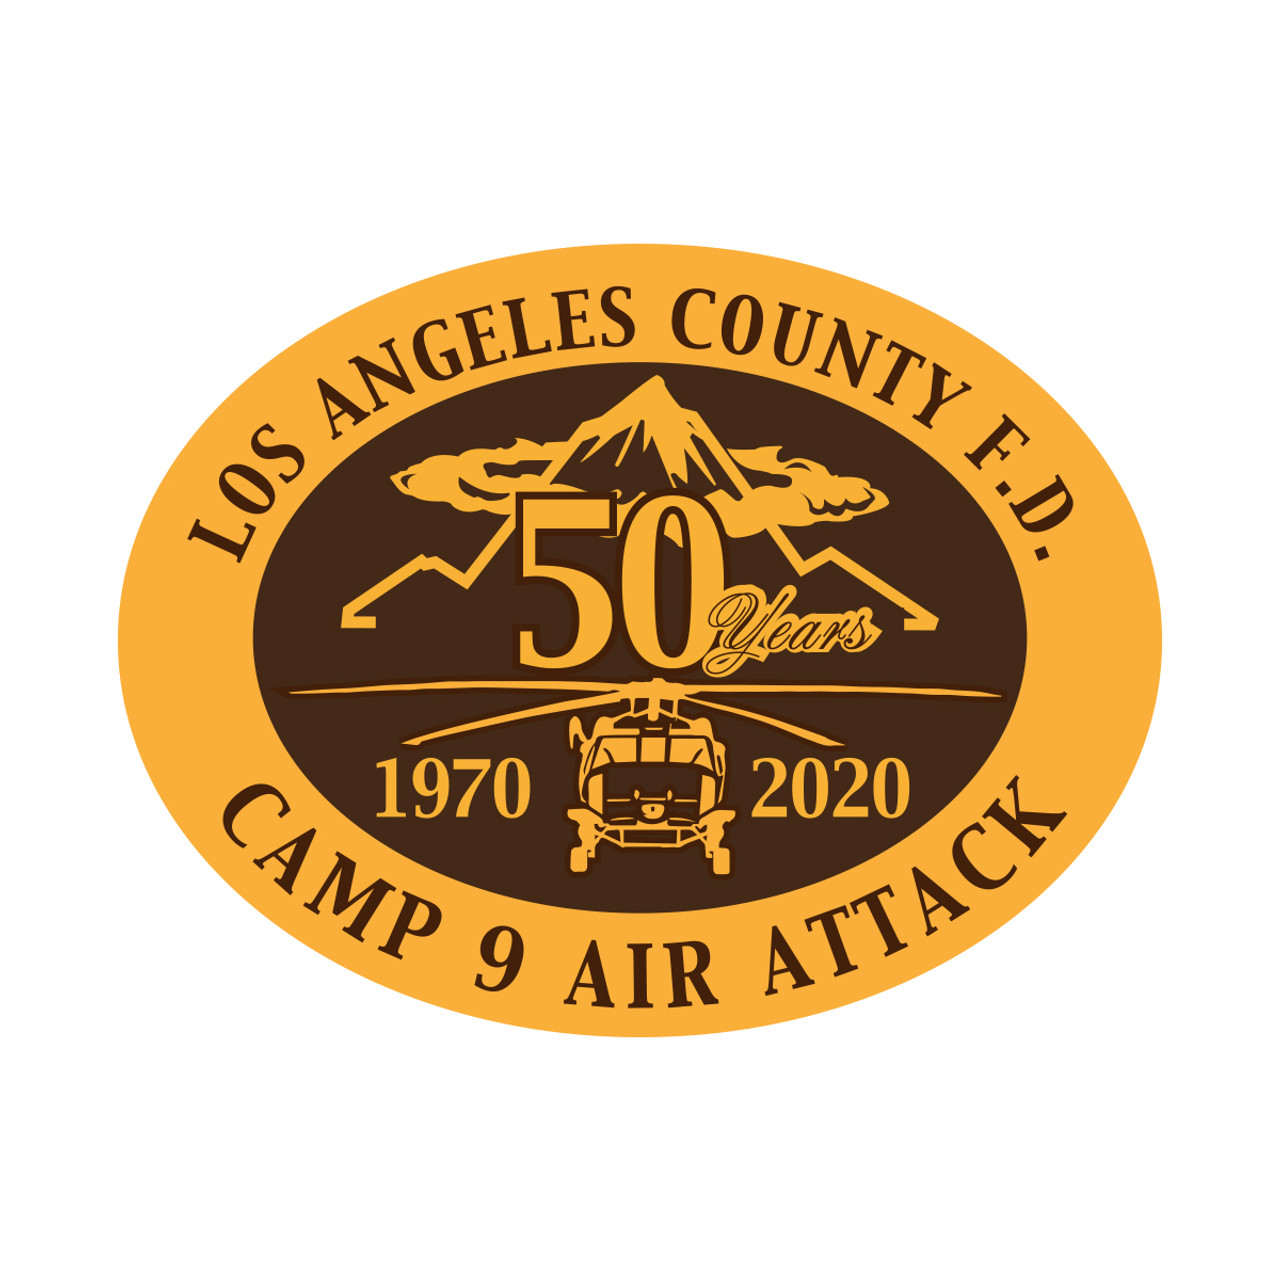 Los Angeles County FD Camp 9 Air Attack 50 Years Buckle(RESTRICTED) Oversized